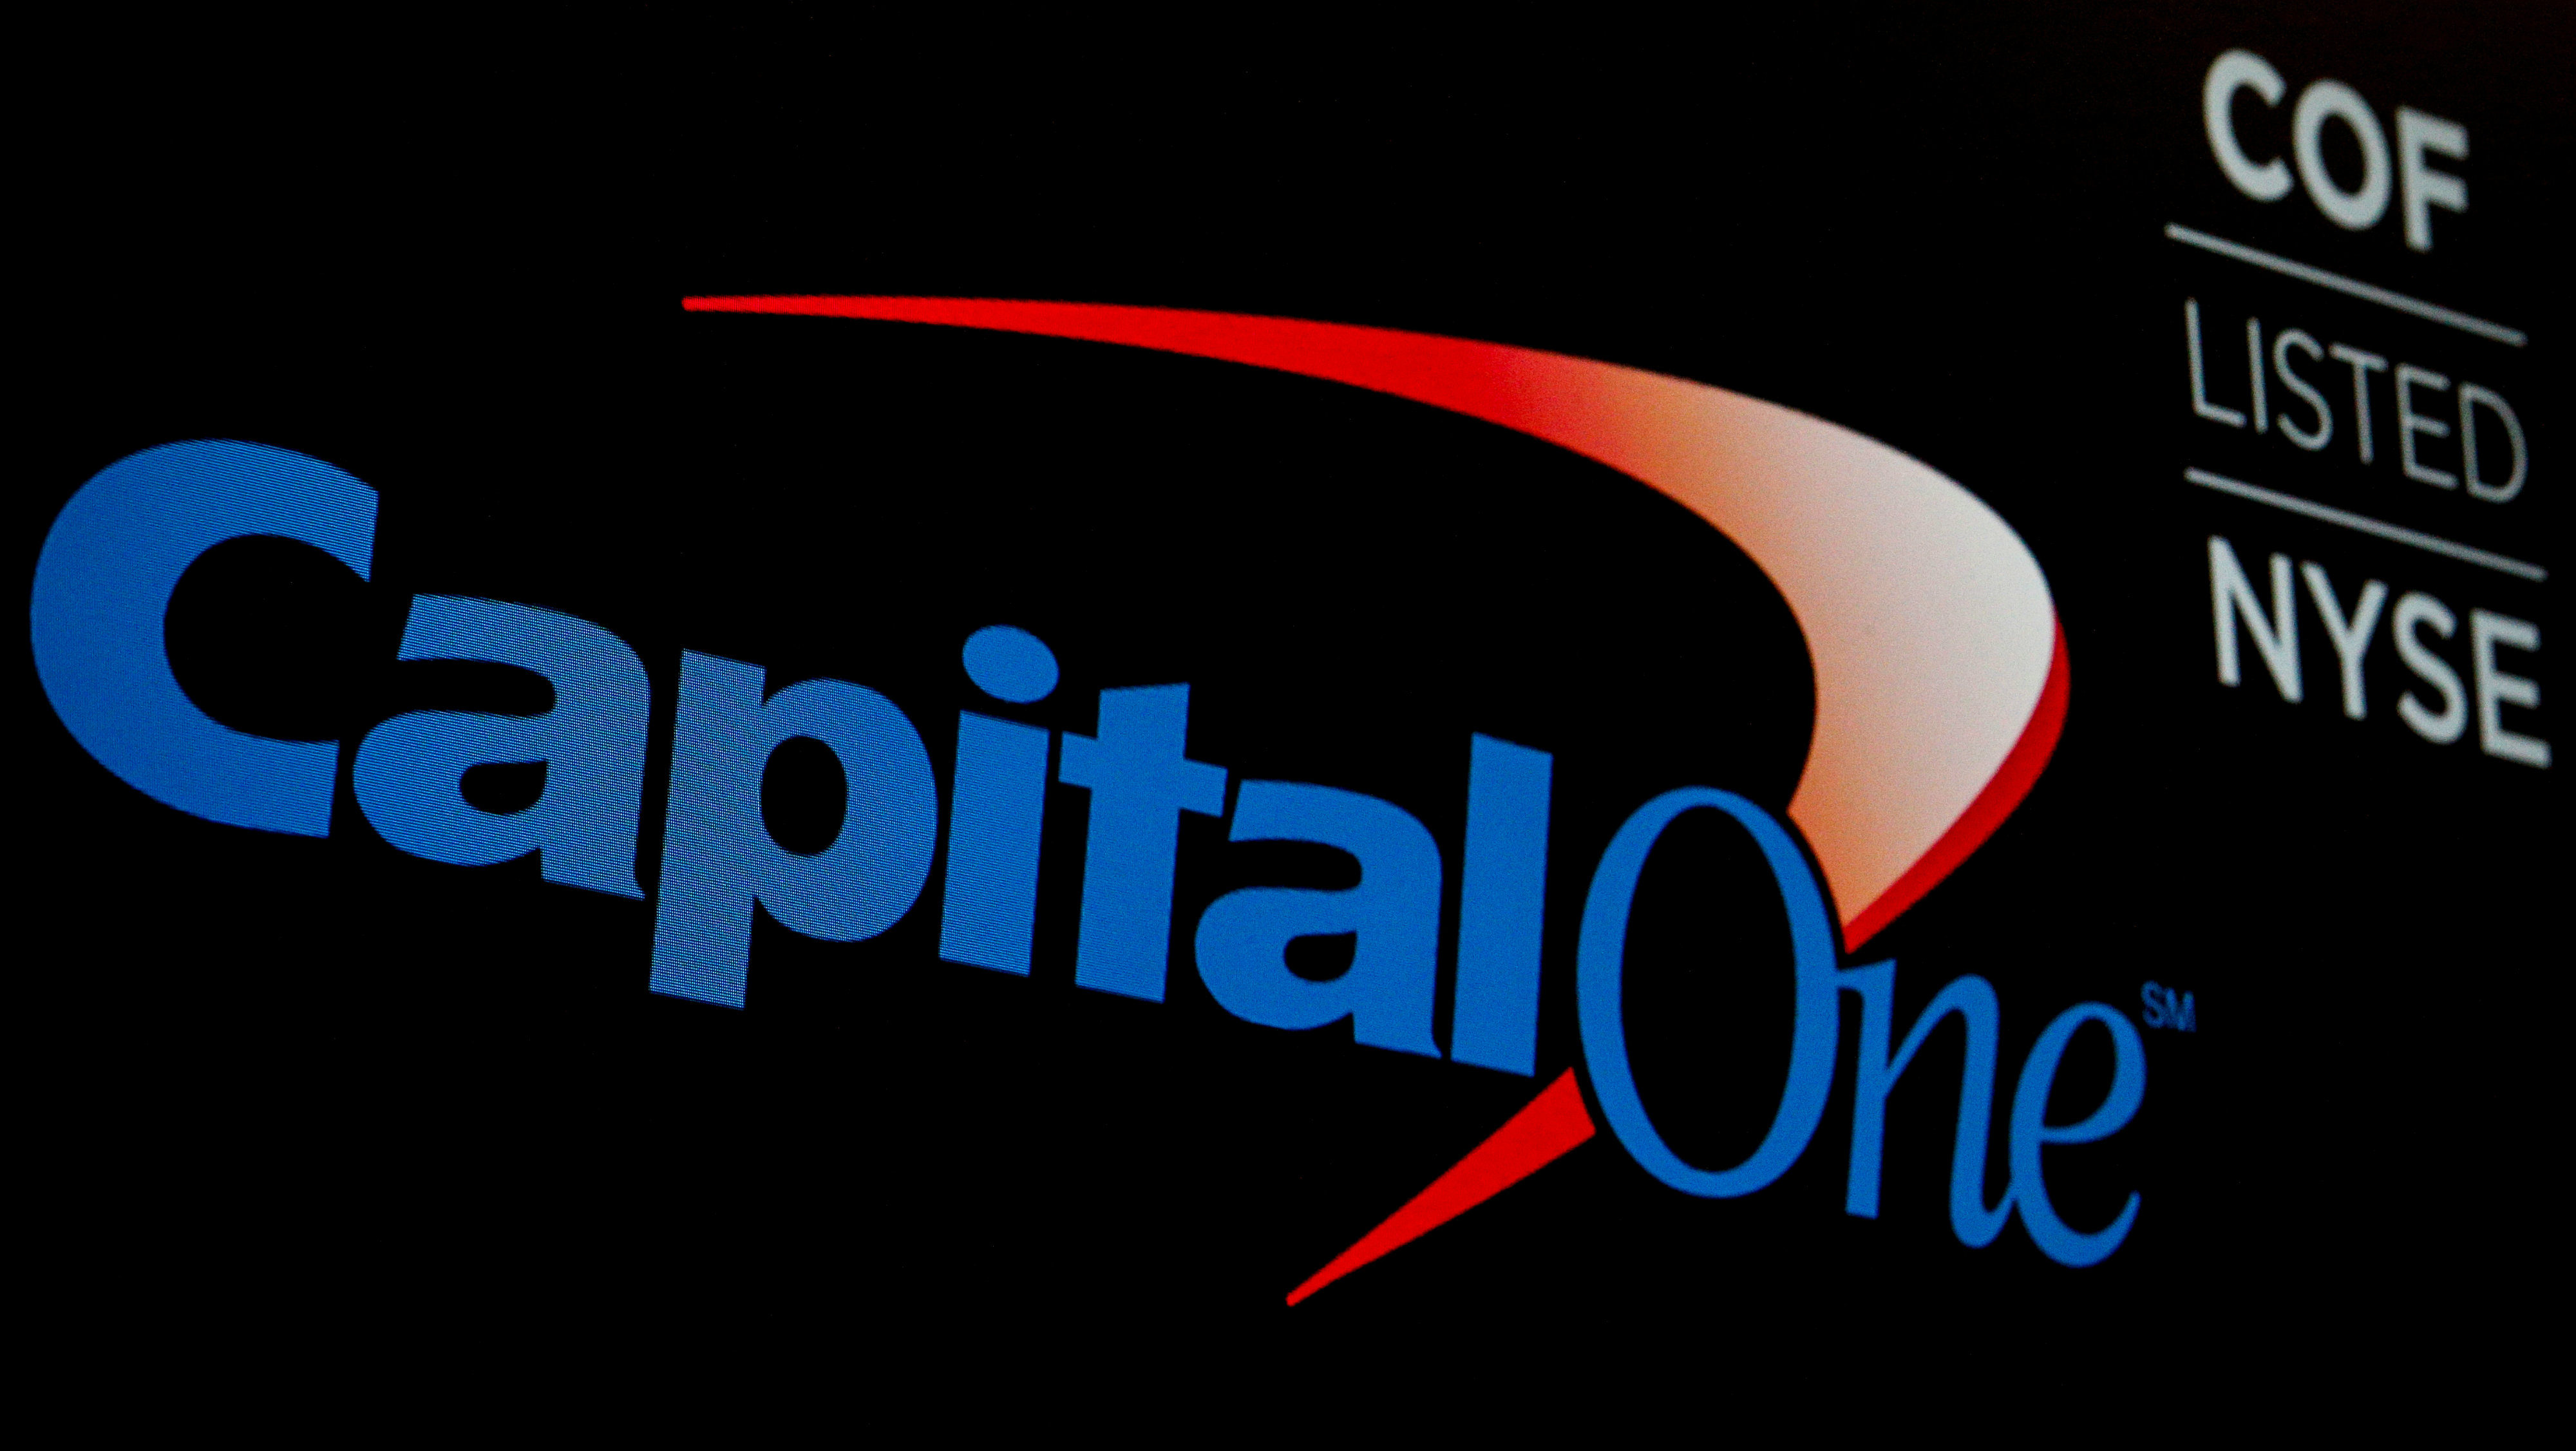 capital one secured credit card uk apply